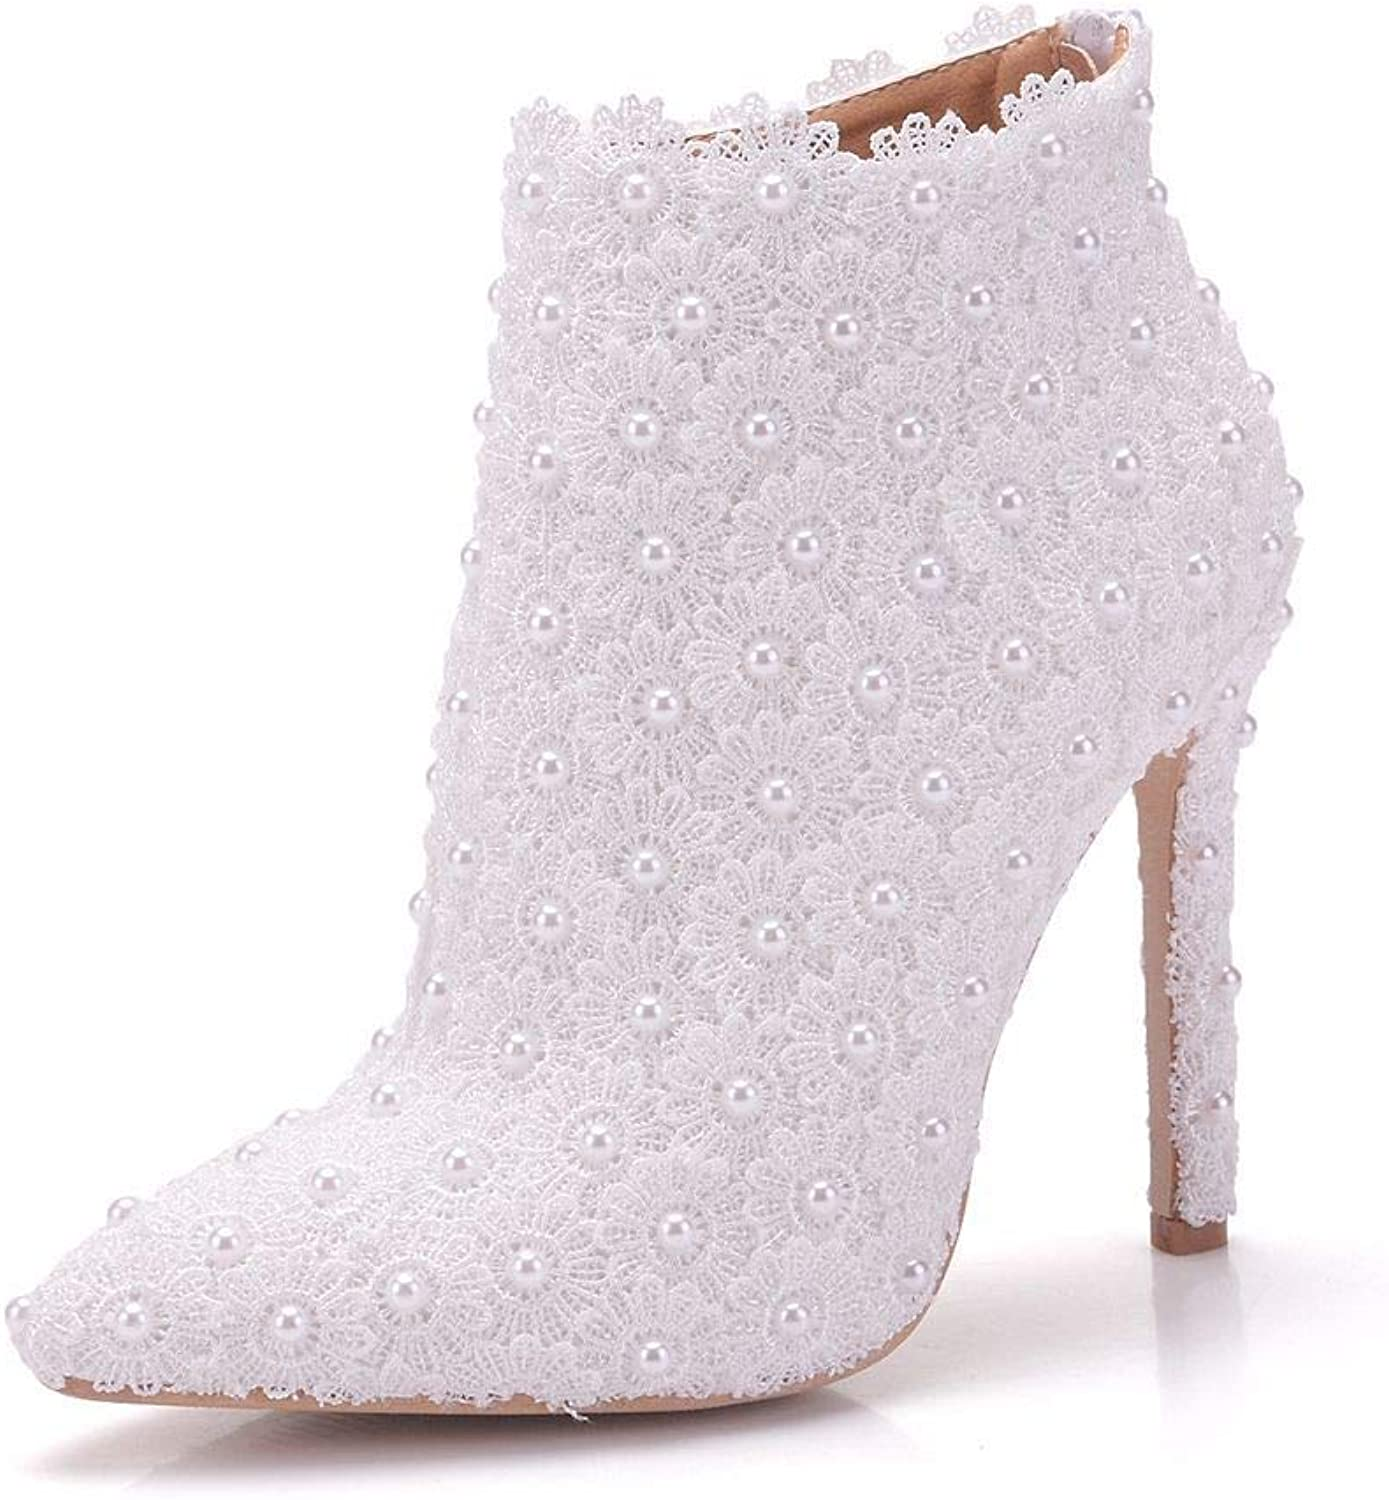 Women's shoes Lace PU Spring & Fall Sweet Wedding shoes Stiletto Heel Pointed Toe Booties Ankle Boots Imitation Pearl Satin White,White,CN37